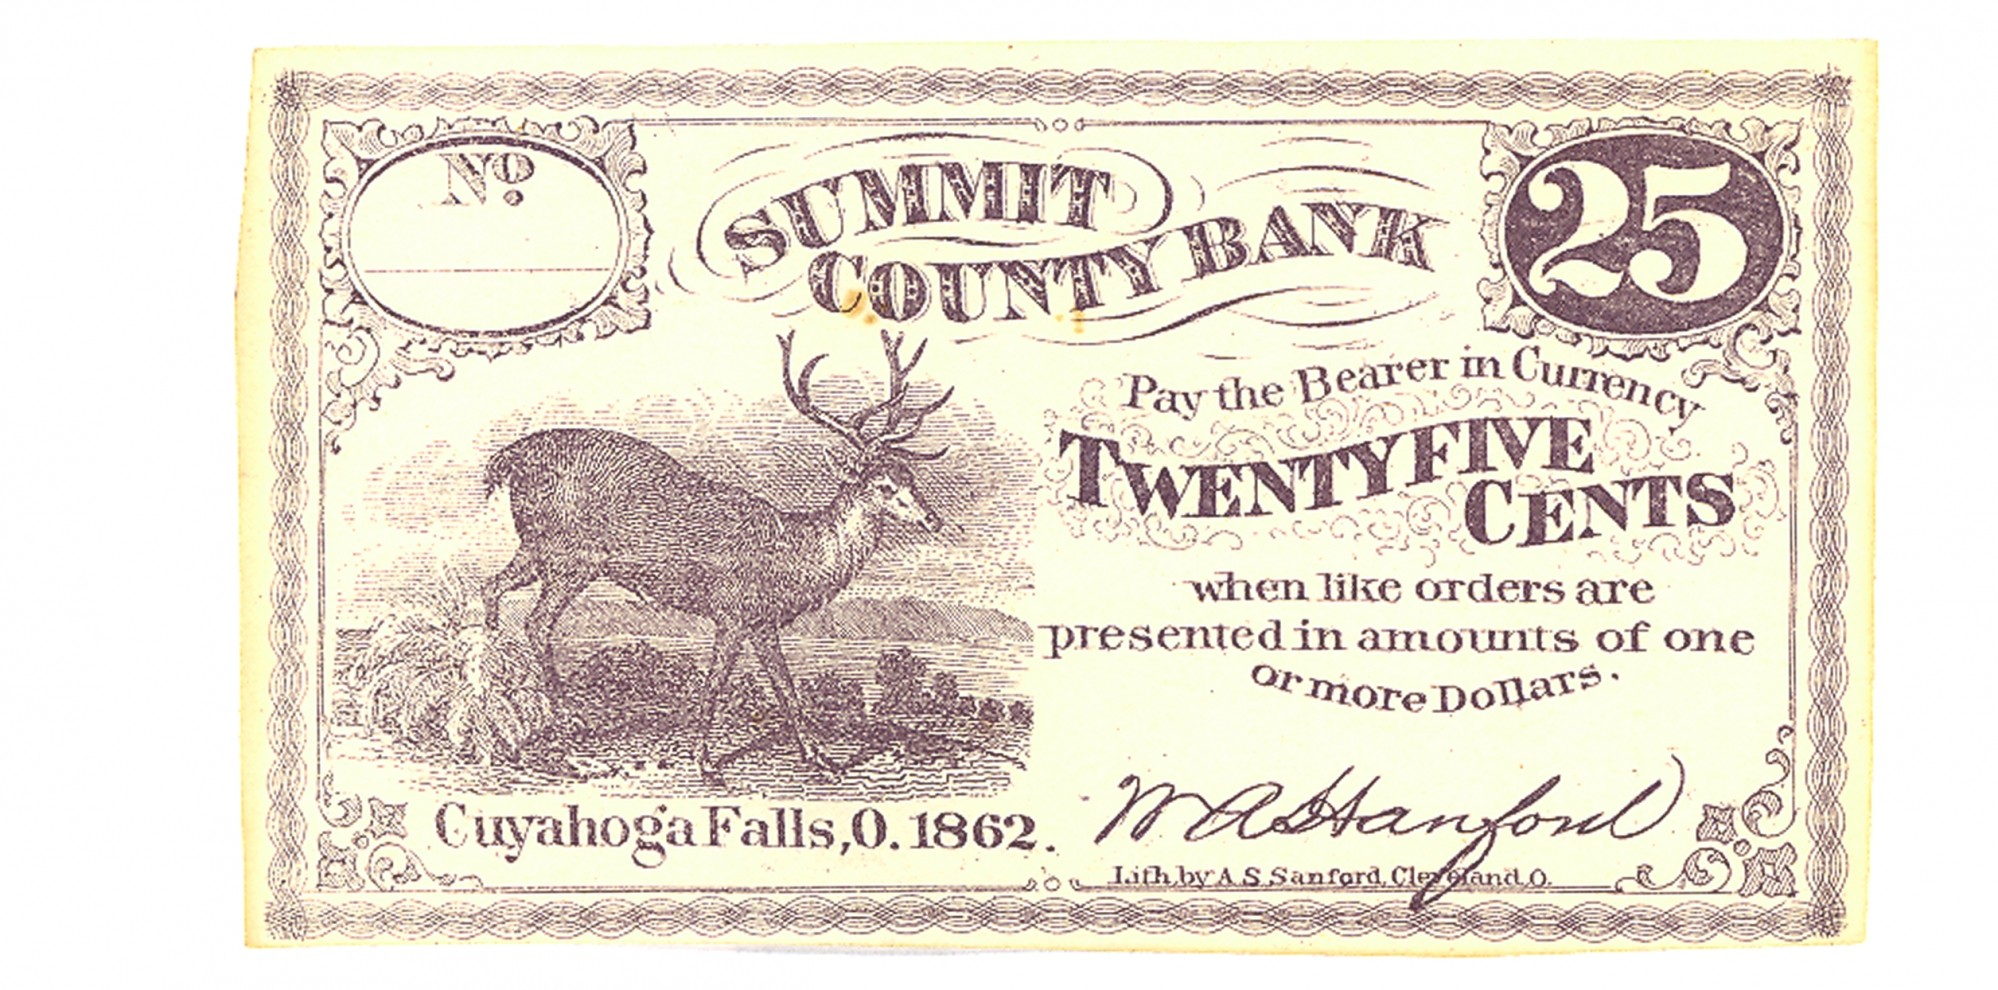 THE SUMMIT COUNTY BANK, OHIO, $.25 NOTE